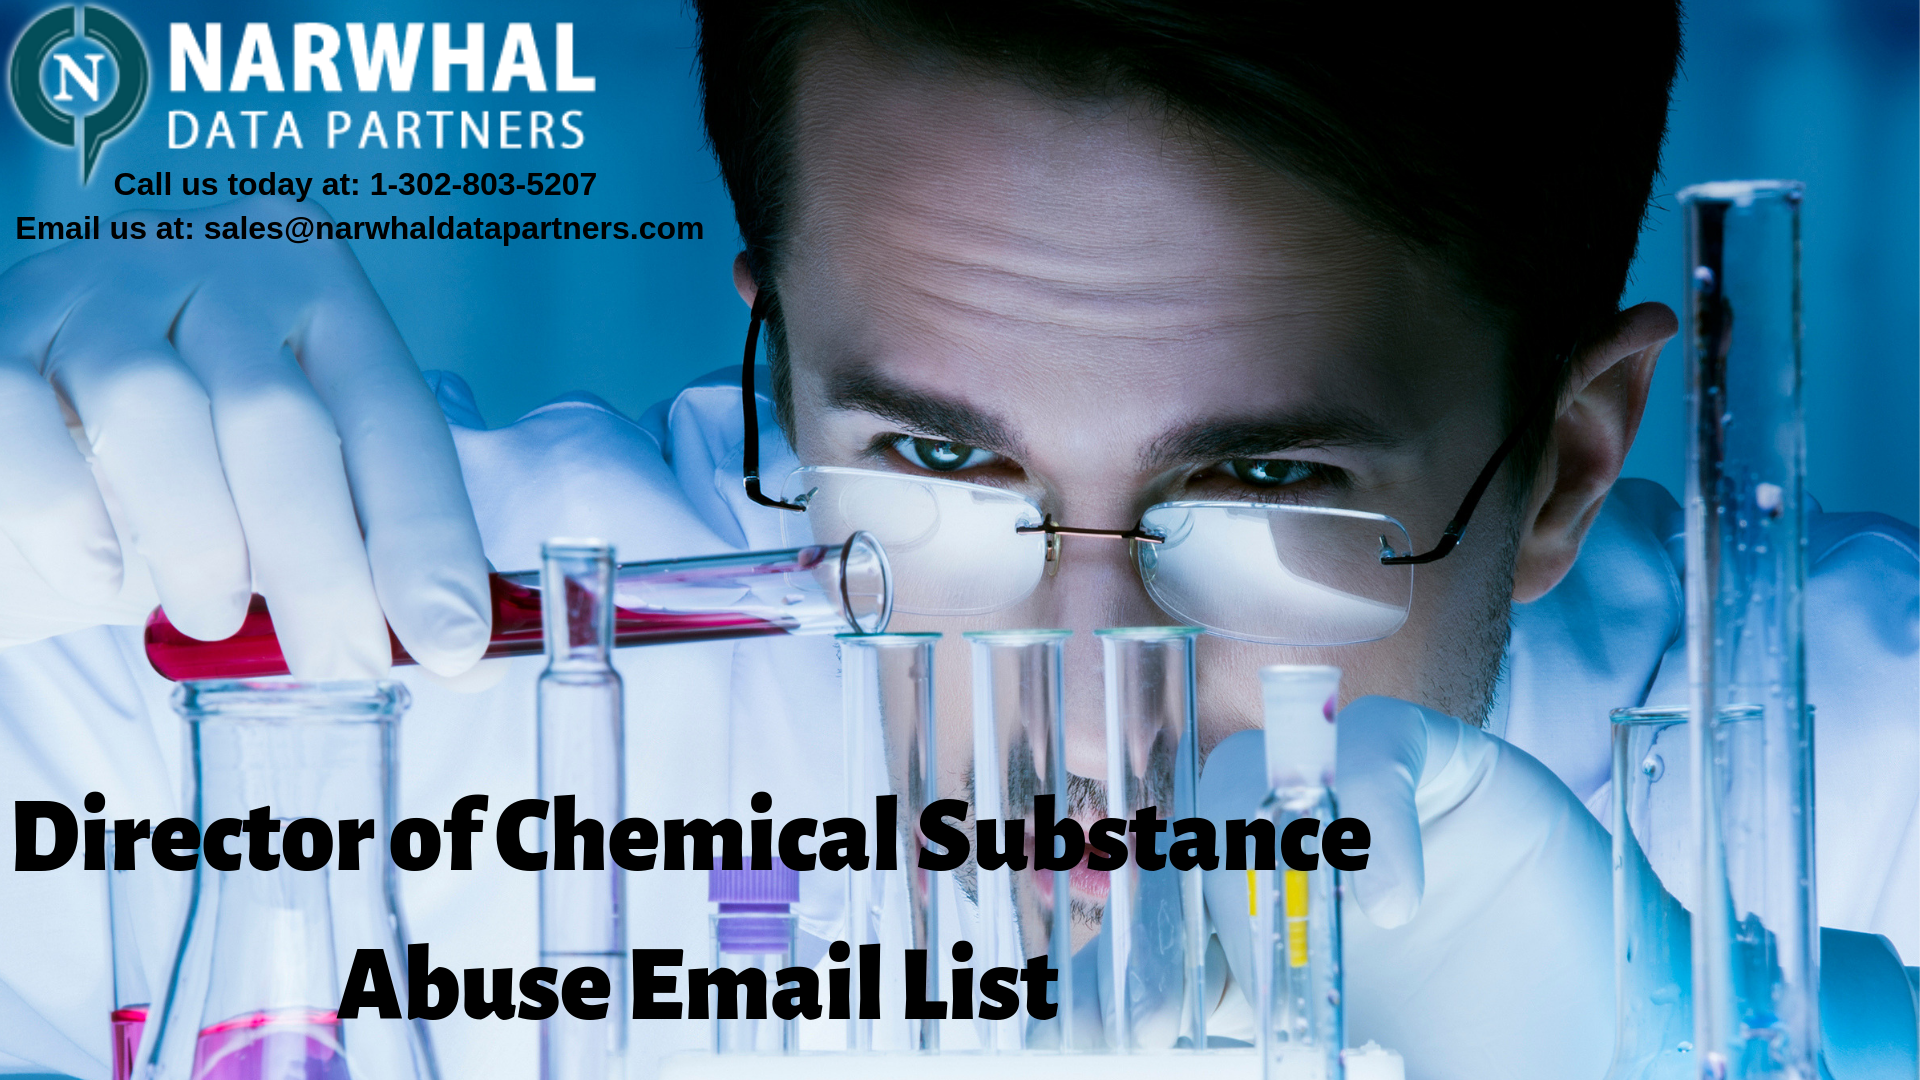 http://narwhaldatapartners.com/director-of-chemical-substance-abuse-email-list.html